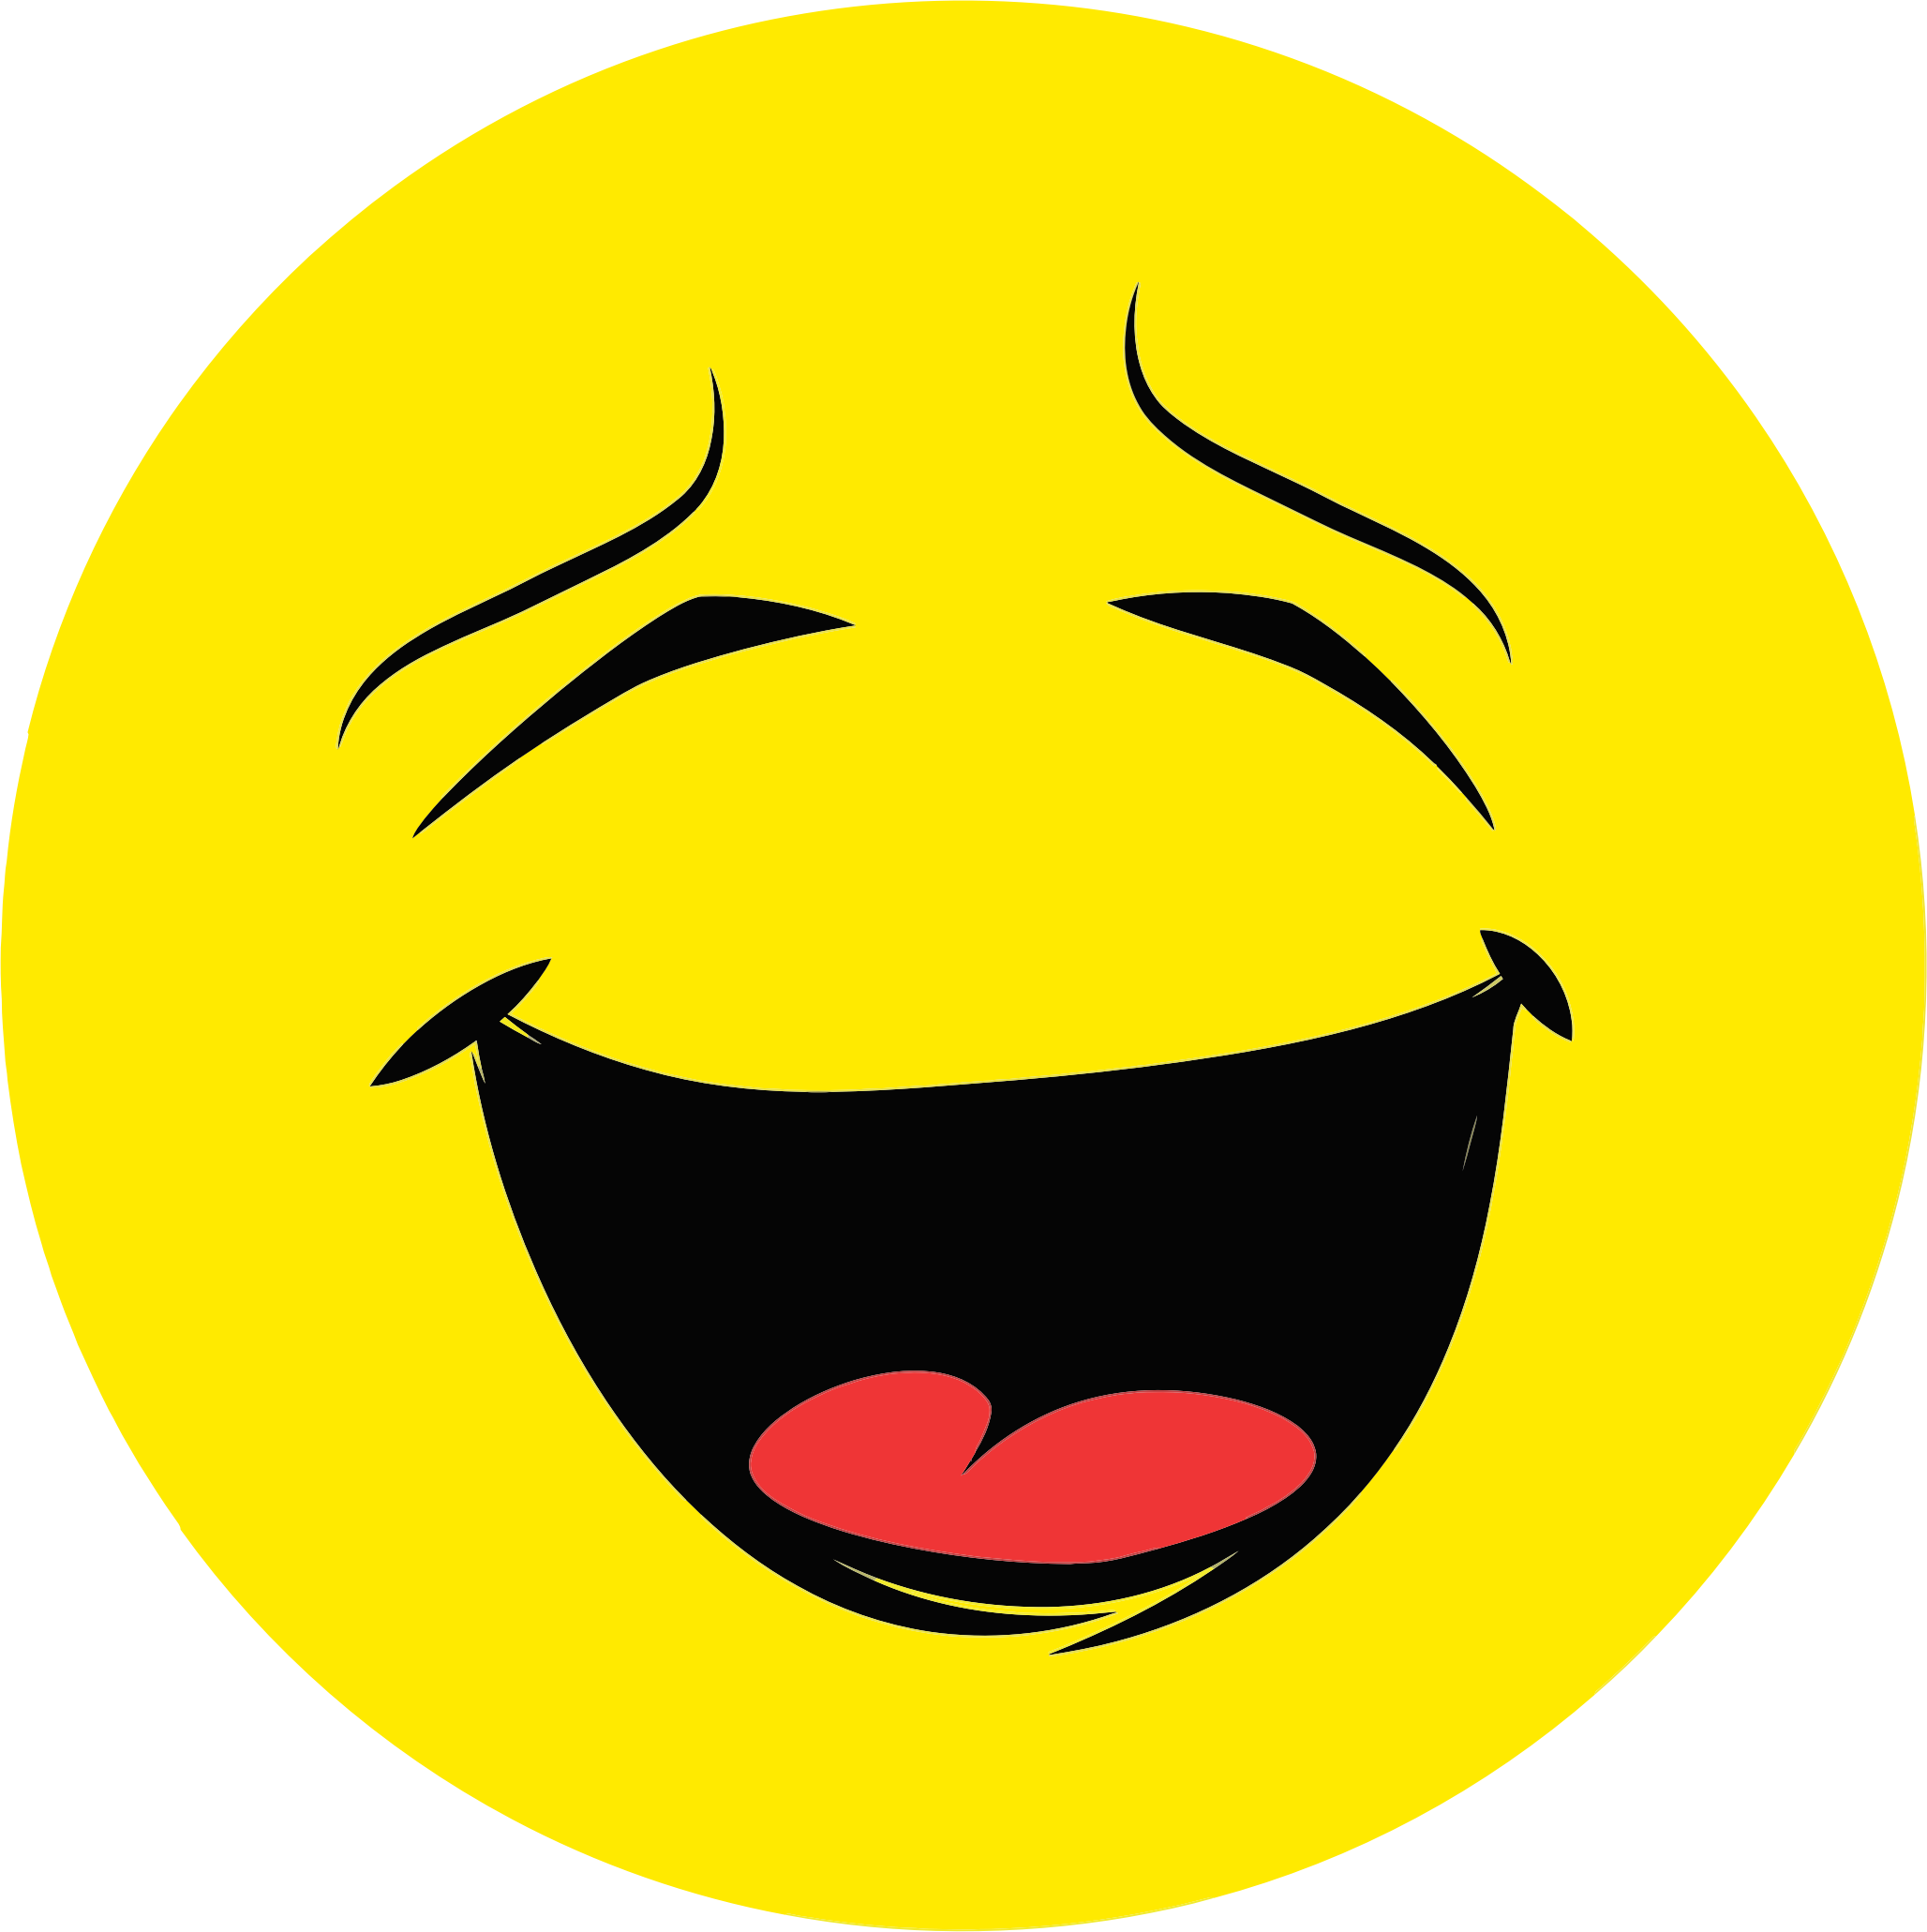 Smileys clipart laugh Smiley Laughing Smiley Laughing Clipart